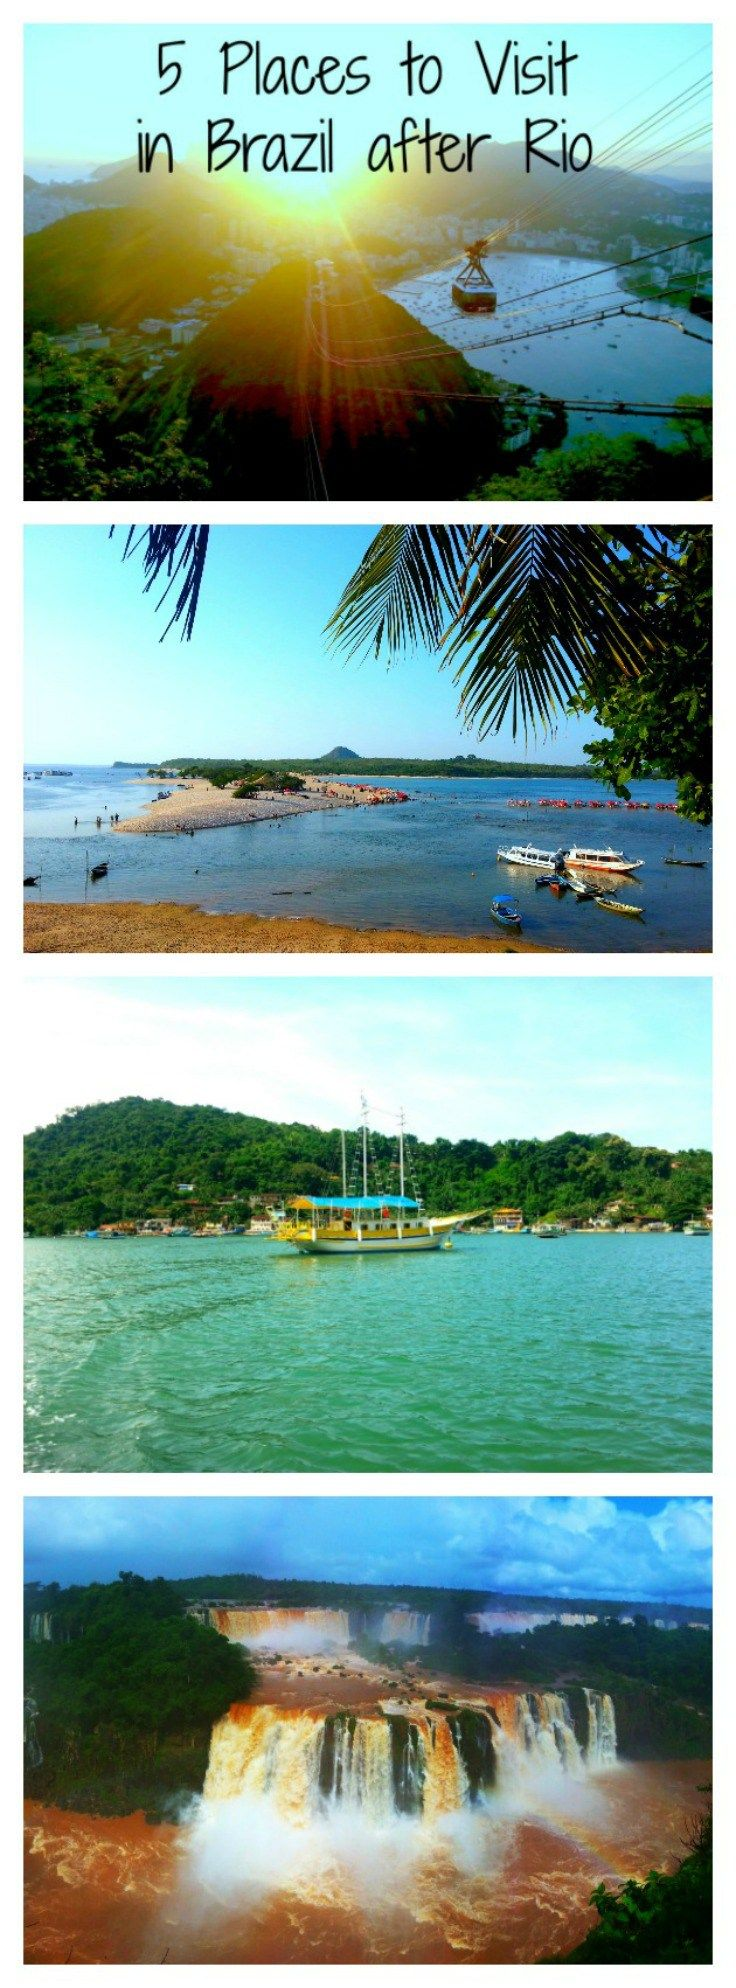 Collage 5 Places to Visit in Brazil After Rio